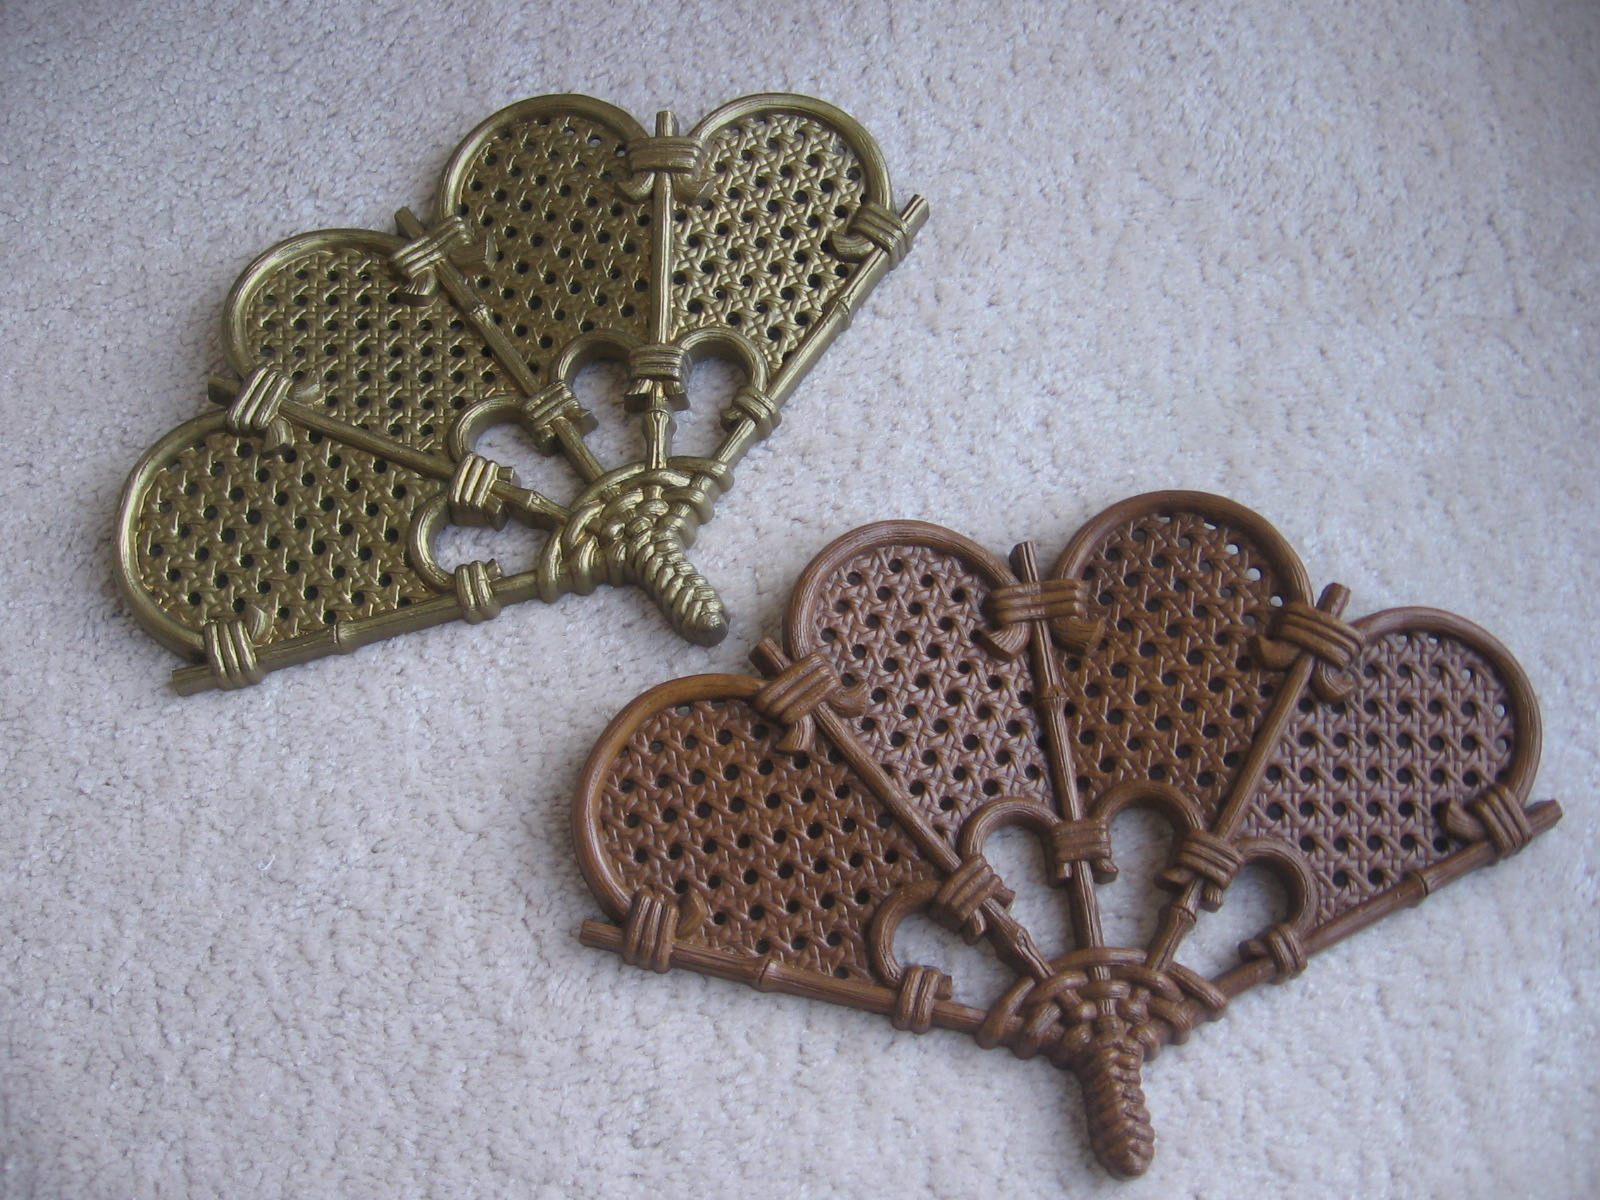 2 Piece Heart Shaped Fan Wall Decor Sets Pertaining To Famous Brown Burwood Wall Fans / Lot Of 2 / Gold And Brown Fans / (View 1 of 20)